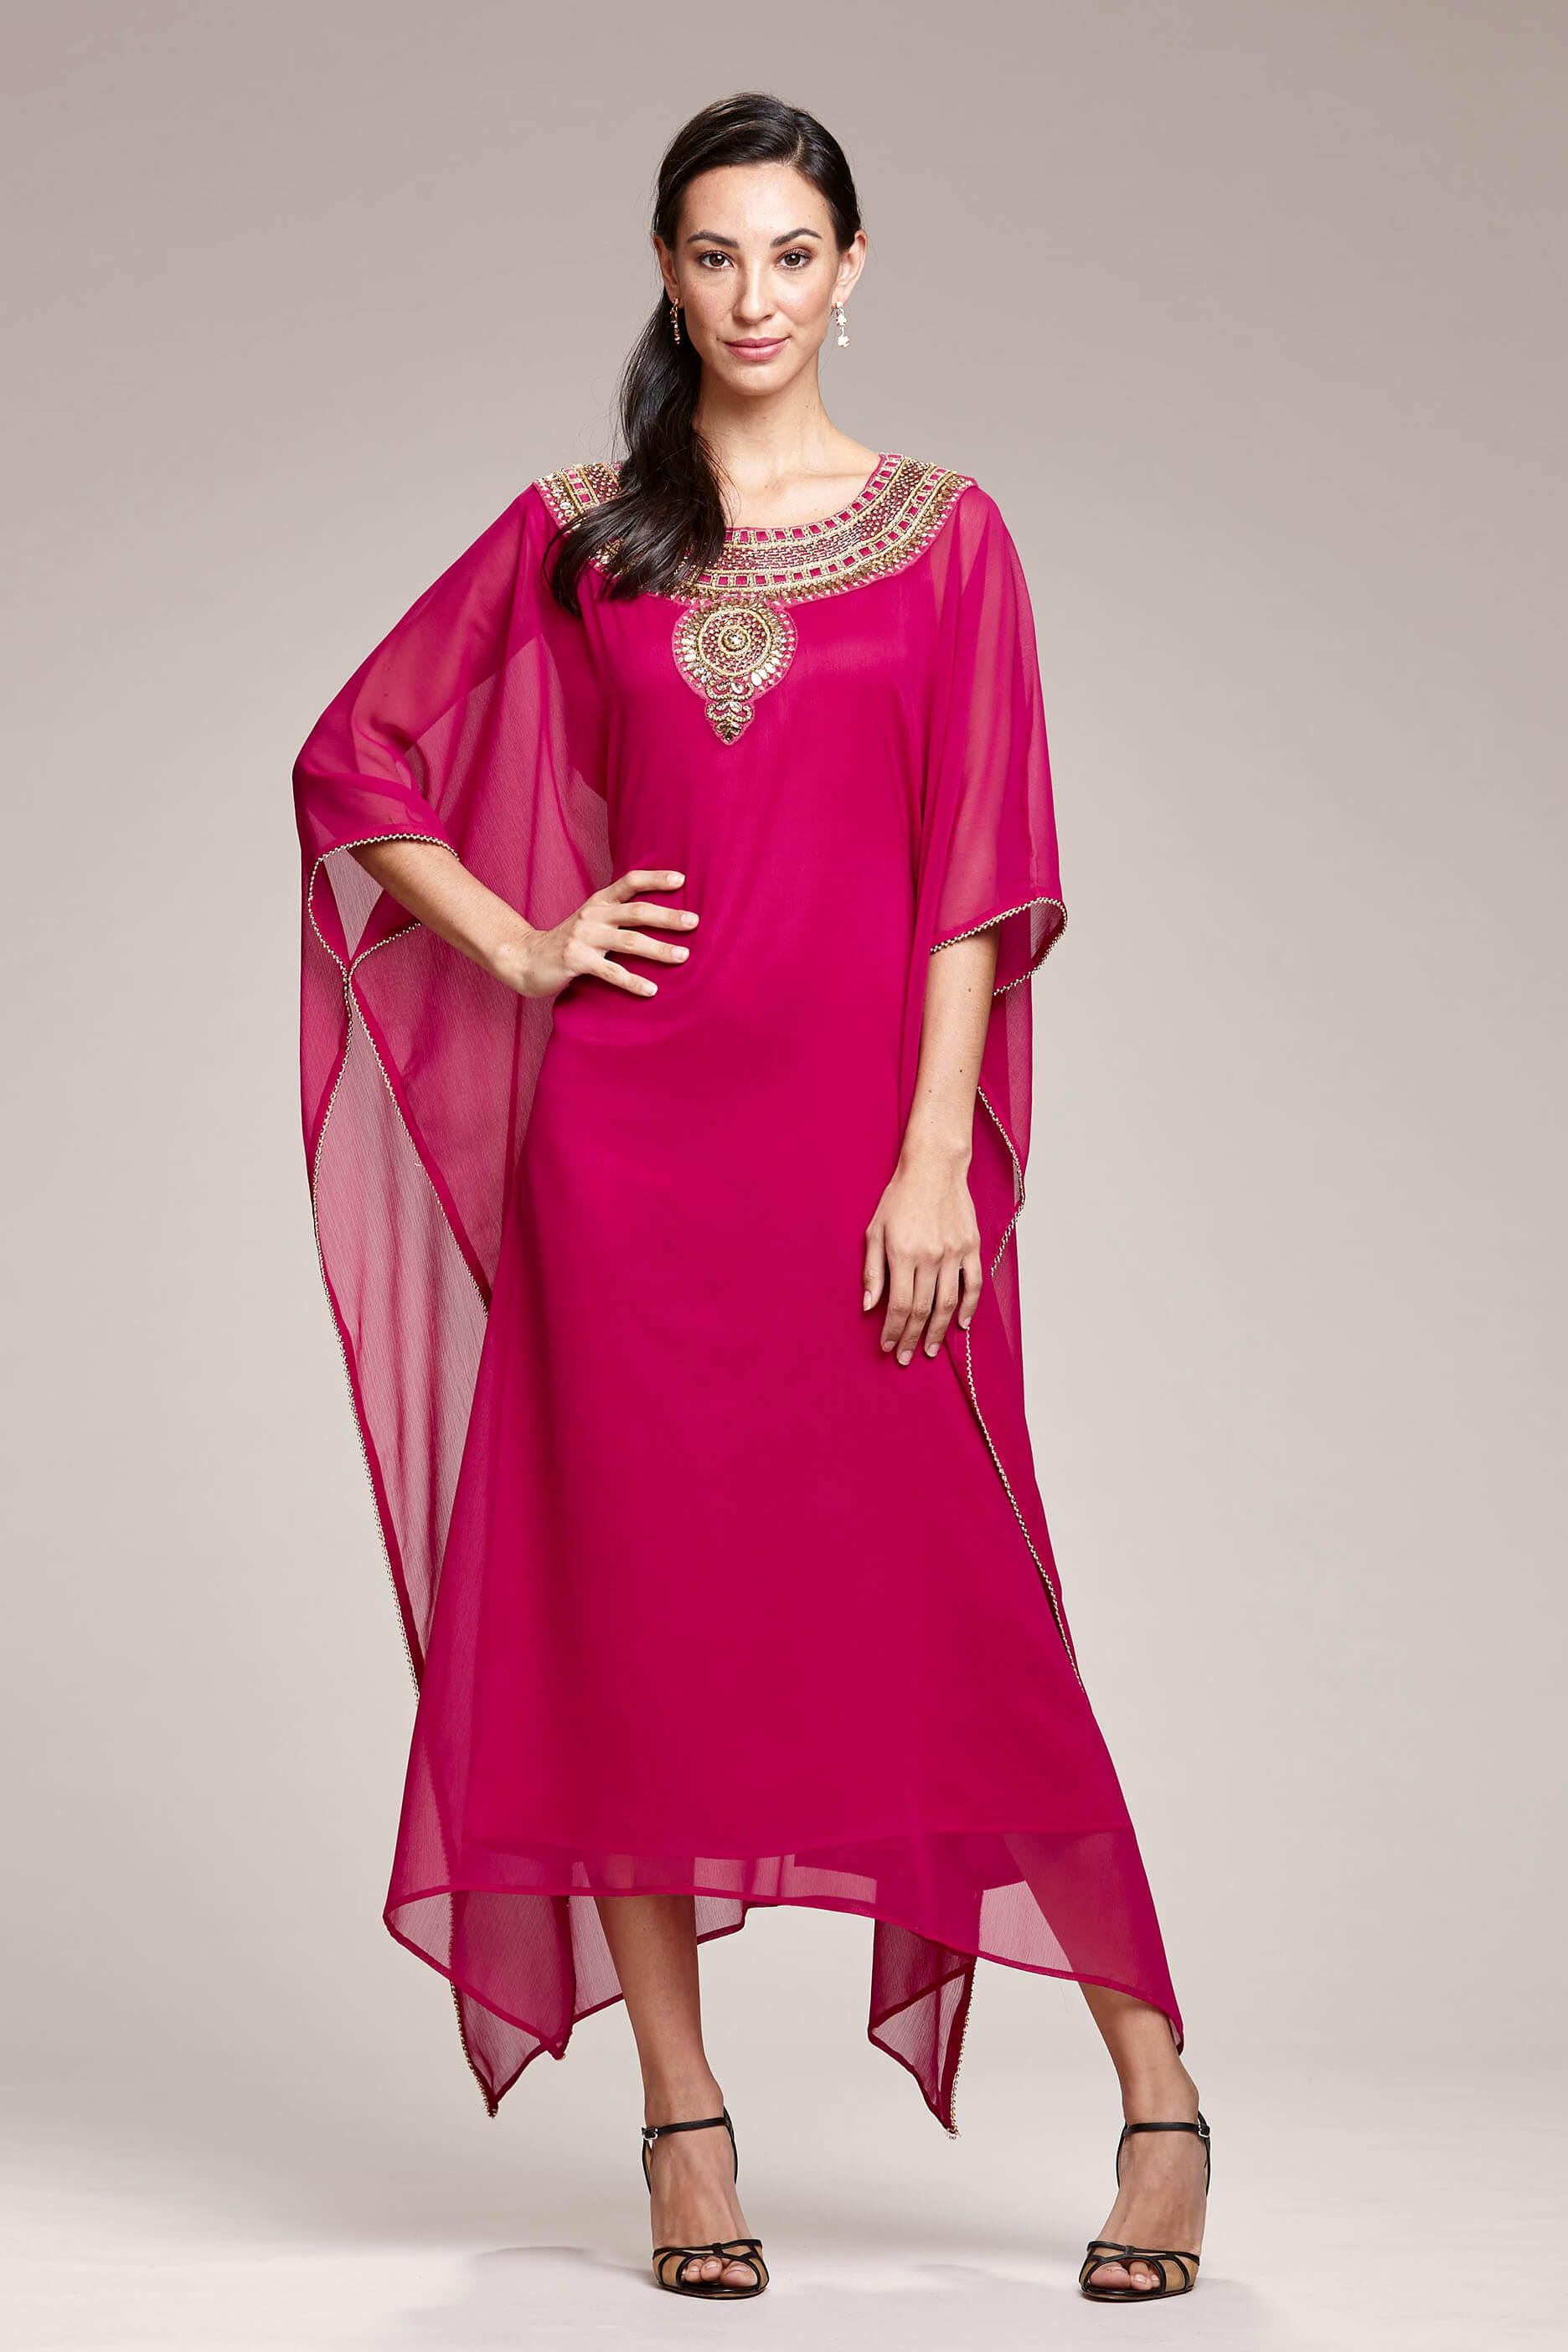 0bf9a44742 Magenta Kaftan Dress With Gold Embroidery   Crystal Detail Front View